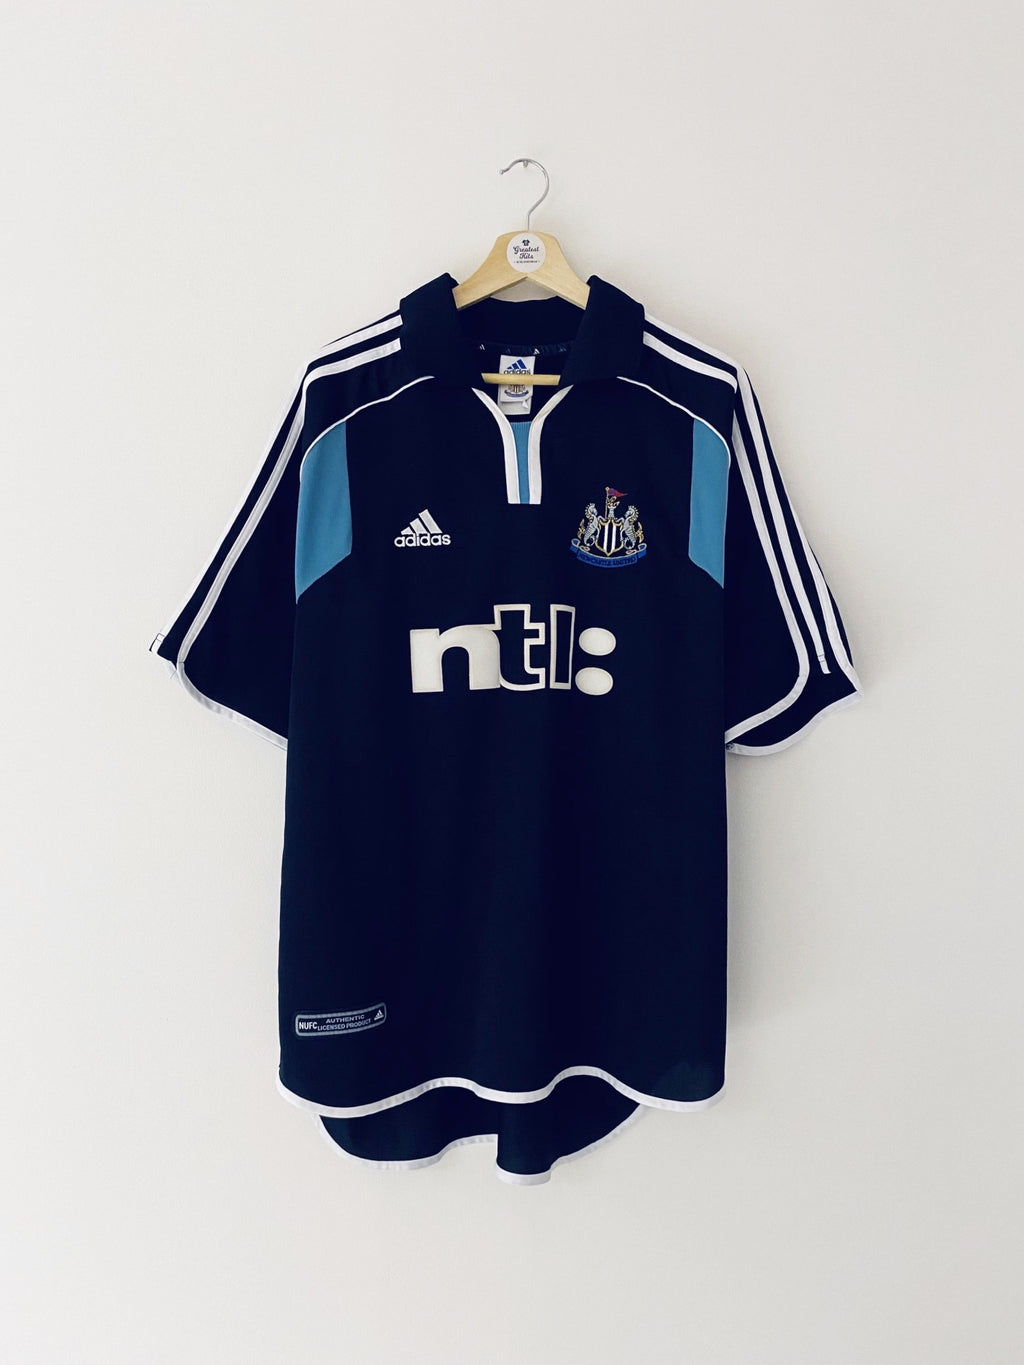 2000/01 Newcastle Away Shirt (XL) 9/10